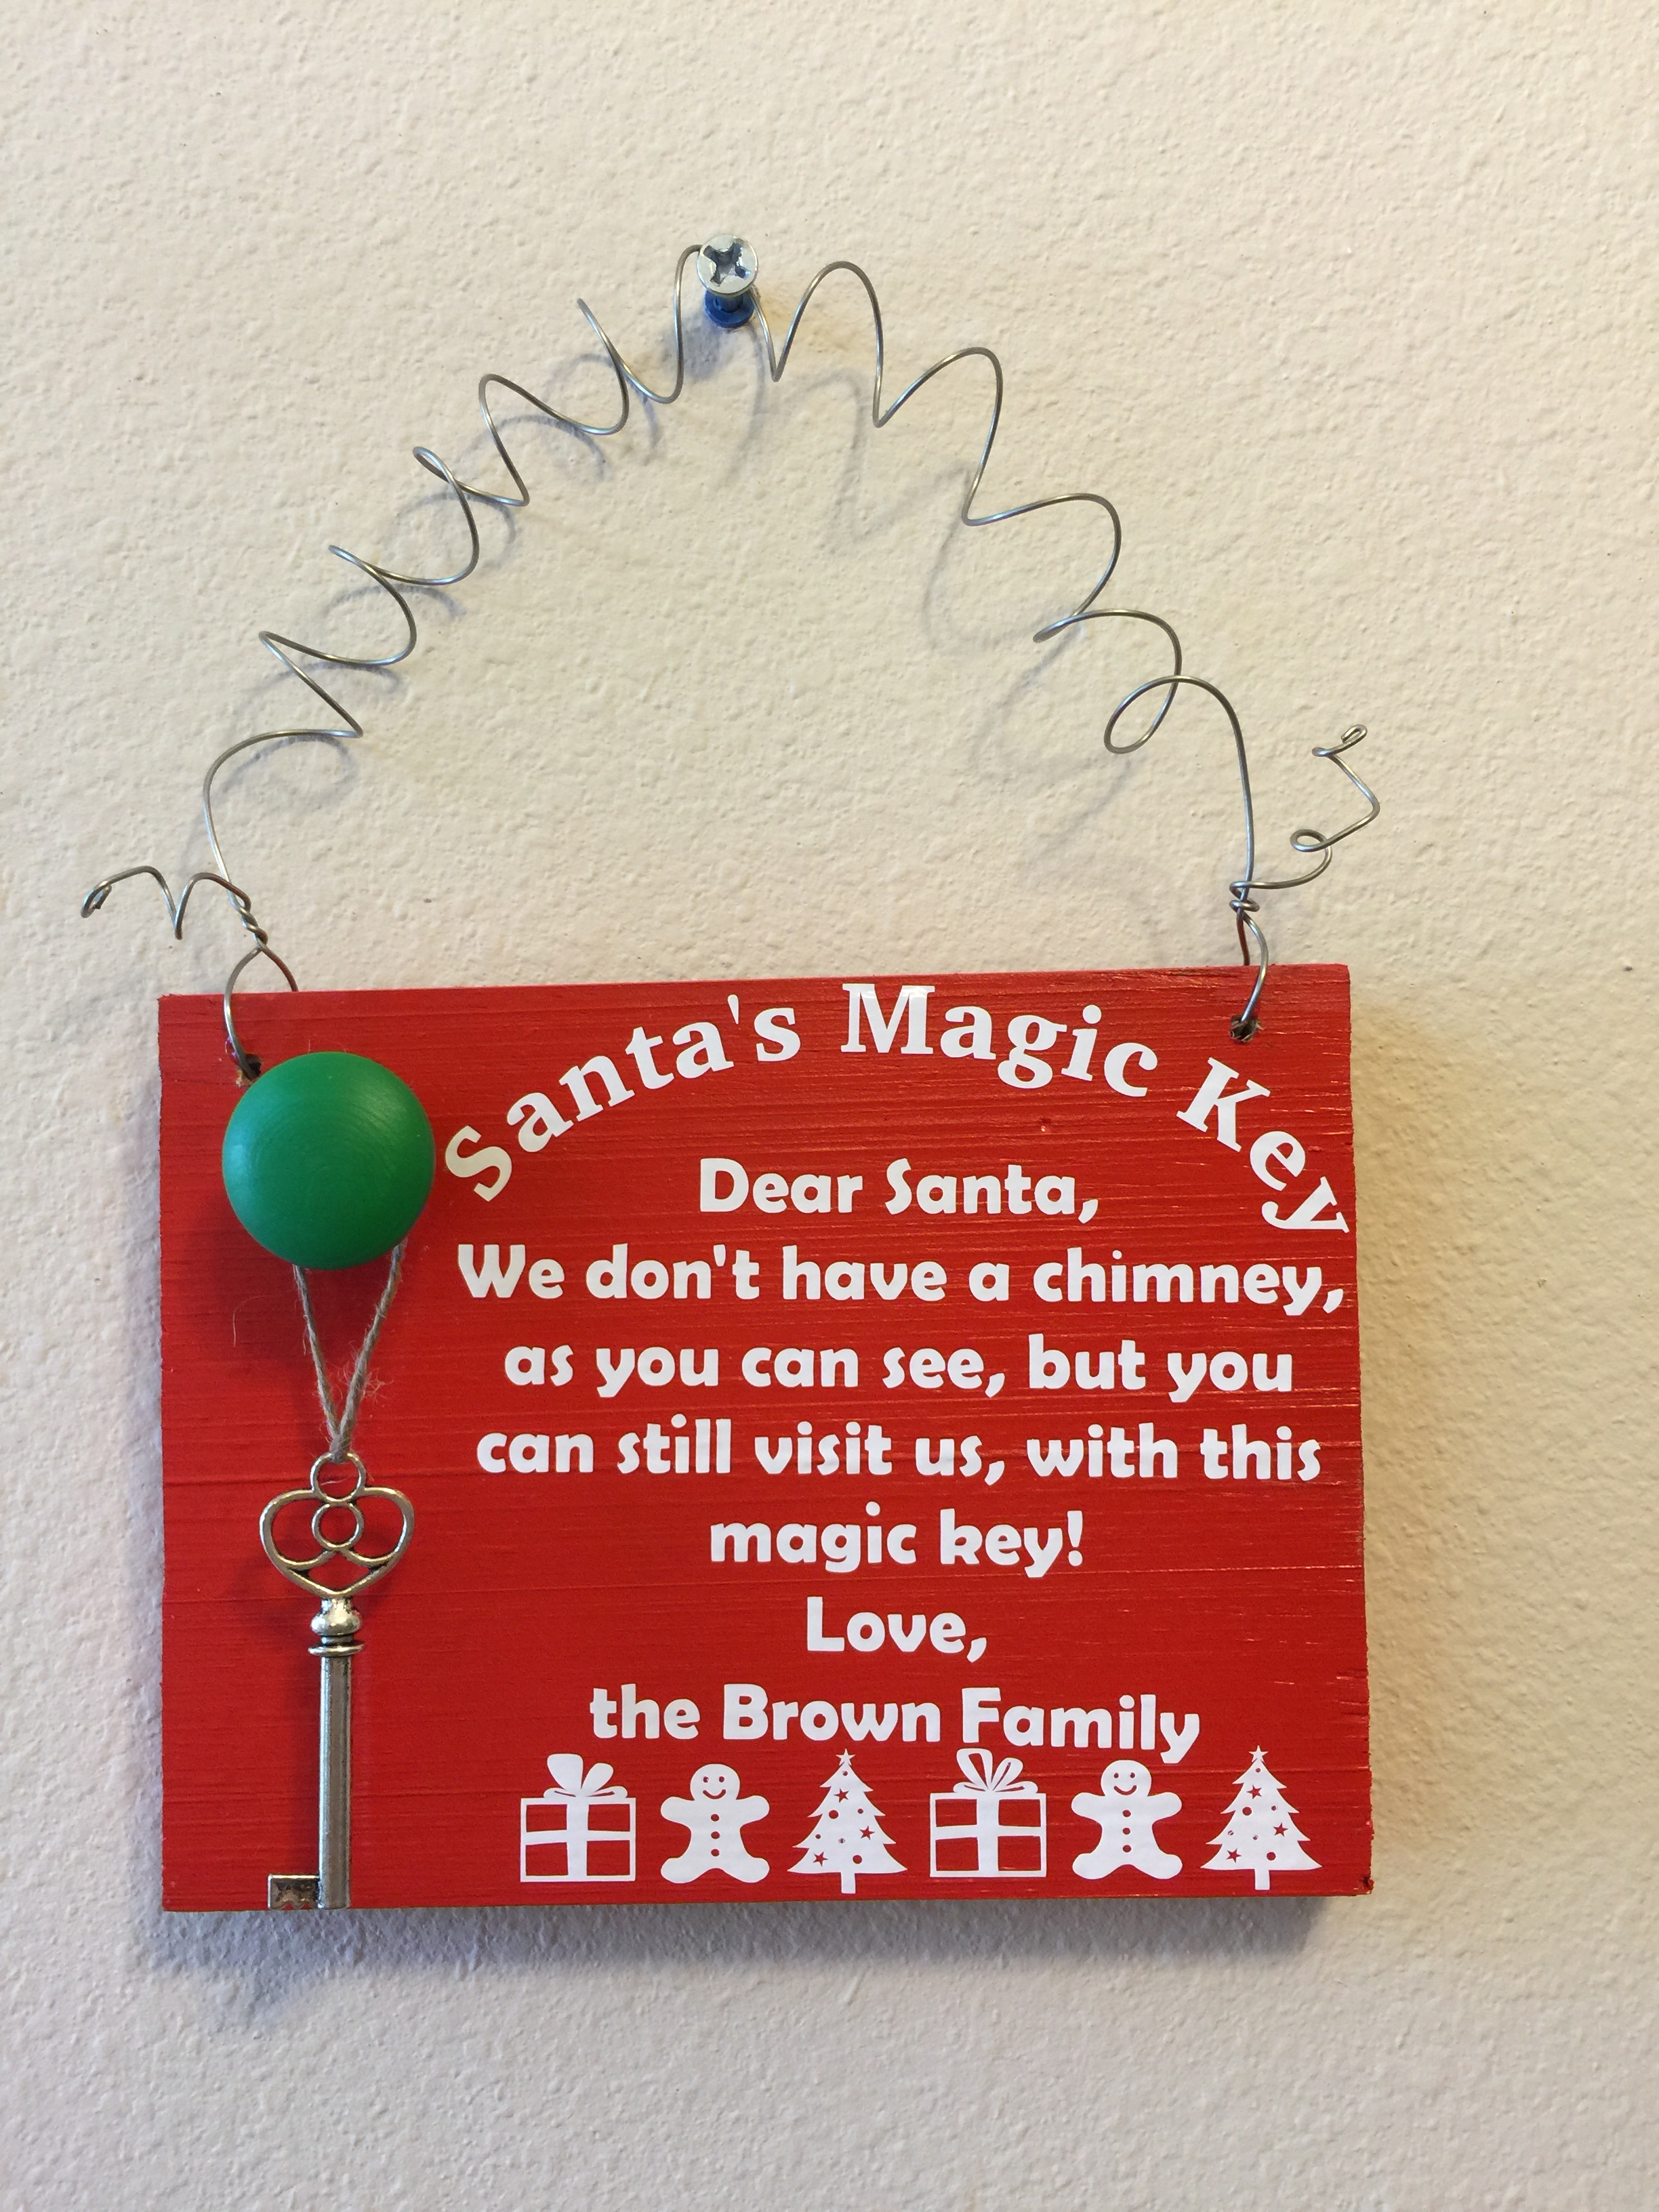 Santas magic key with quote and name custom gifts by kb llc santas magic key with quote and name m4hsunfo